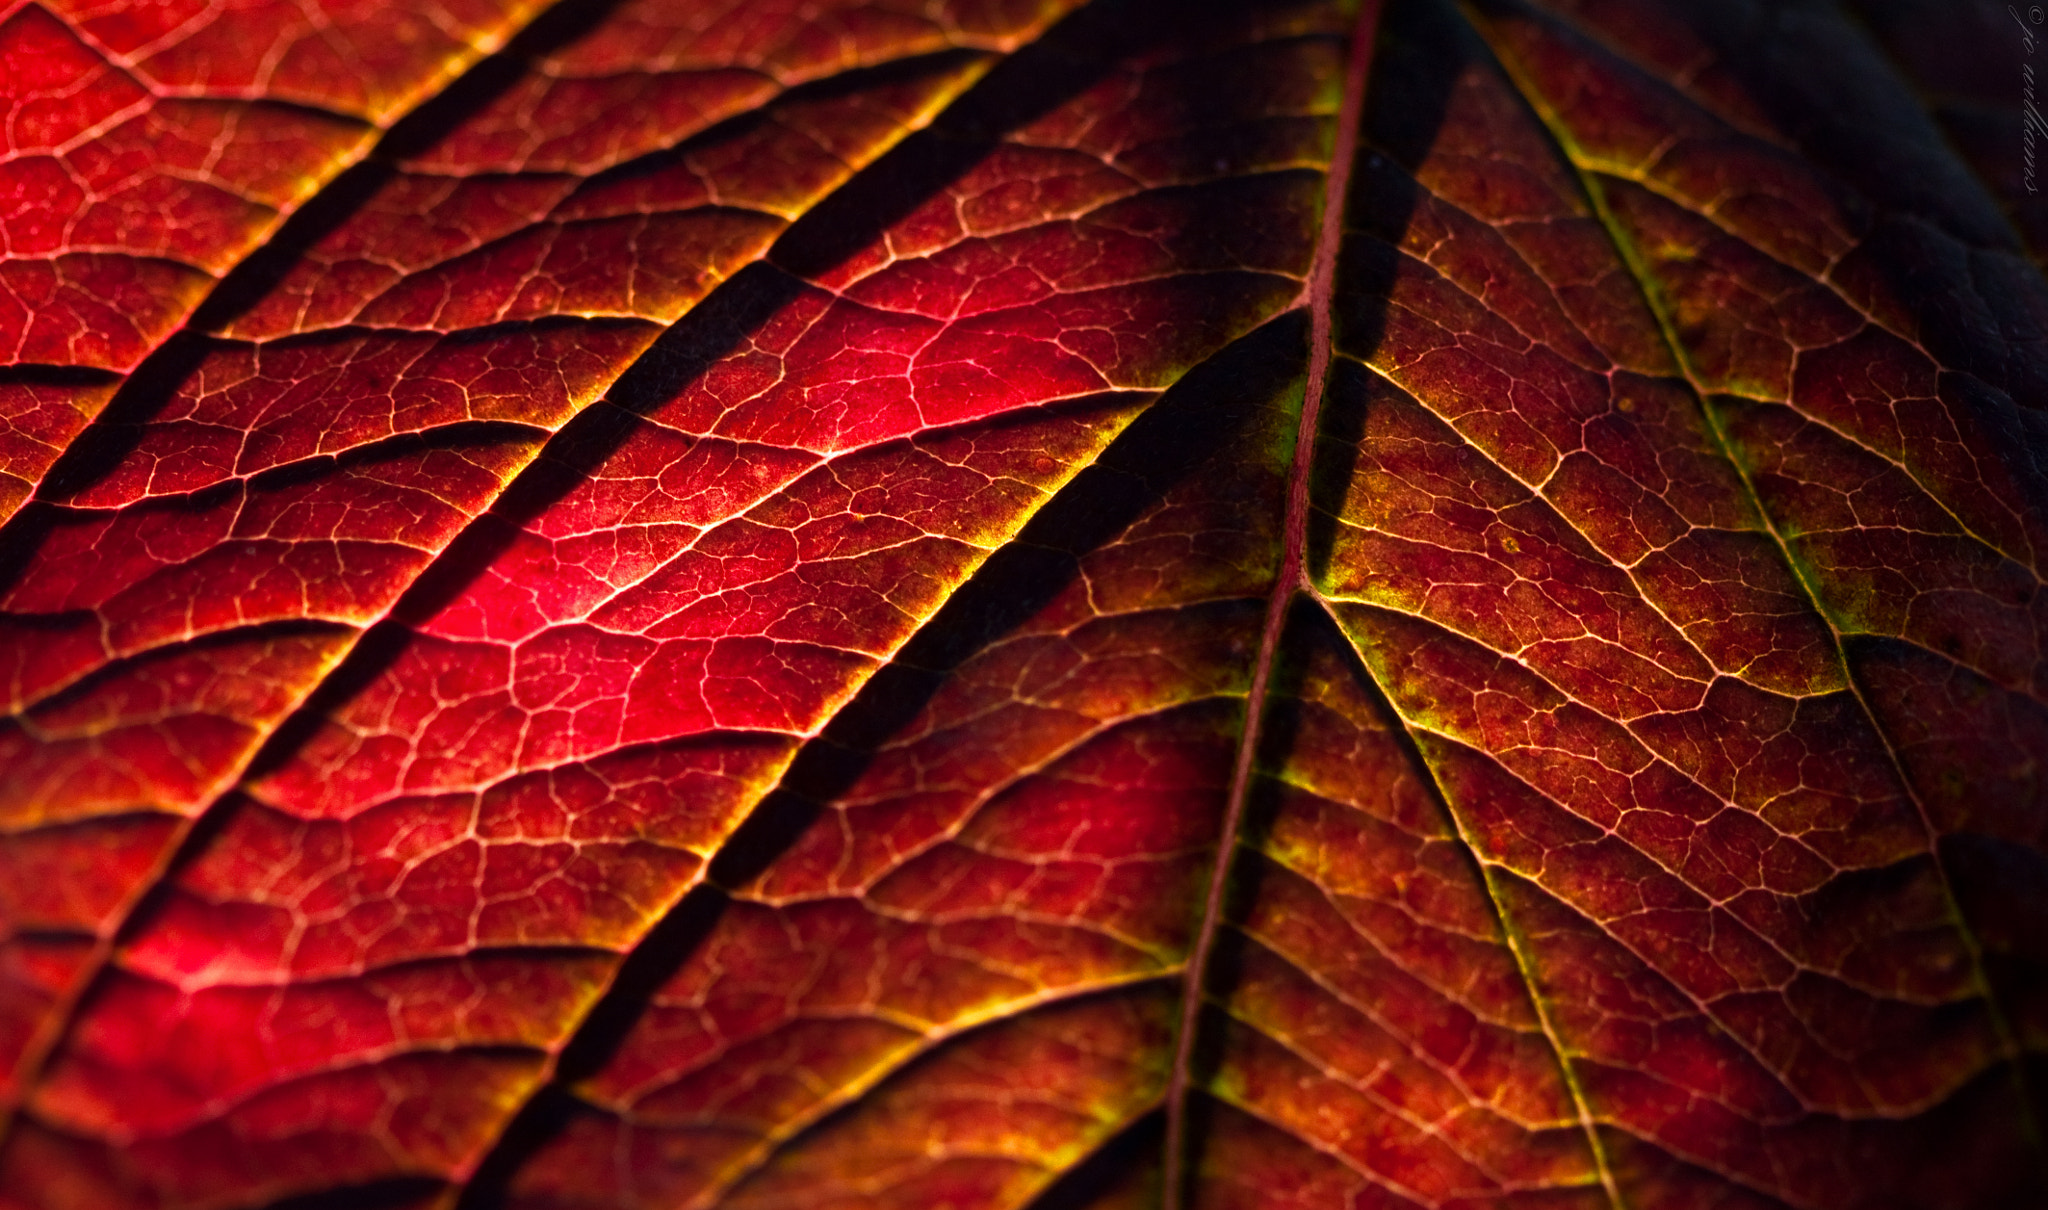 Photograph Lost Chlorophyll by jo williams on 500px